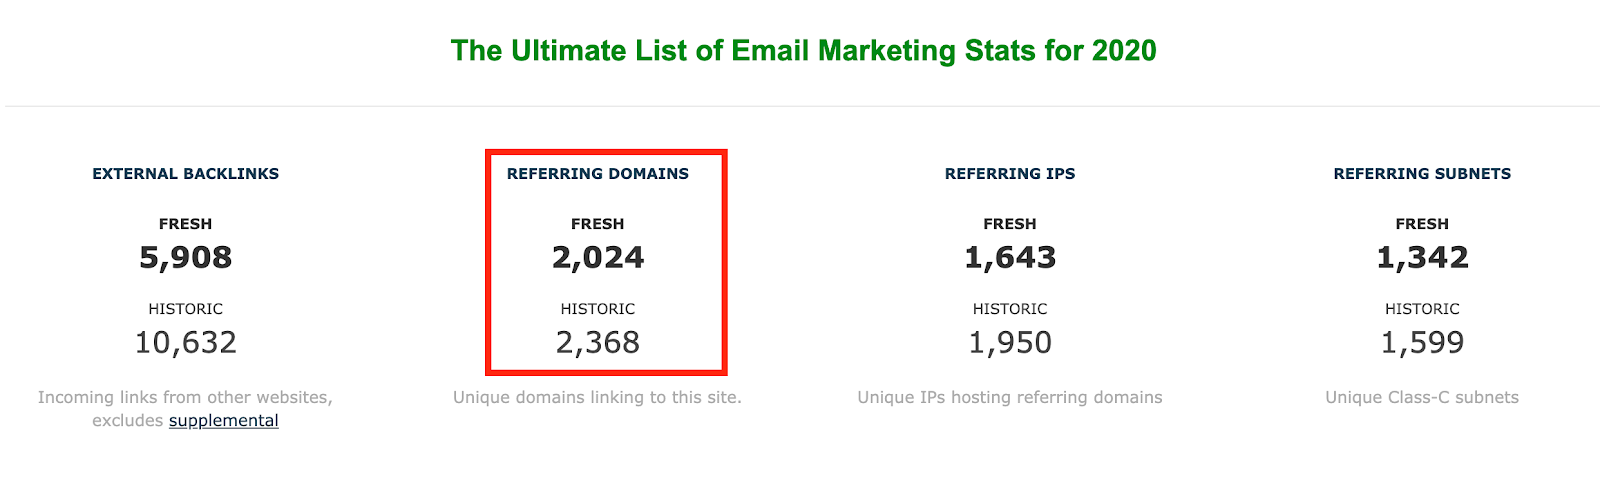 The Ultimate List of Email Marketing Stats for 2020